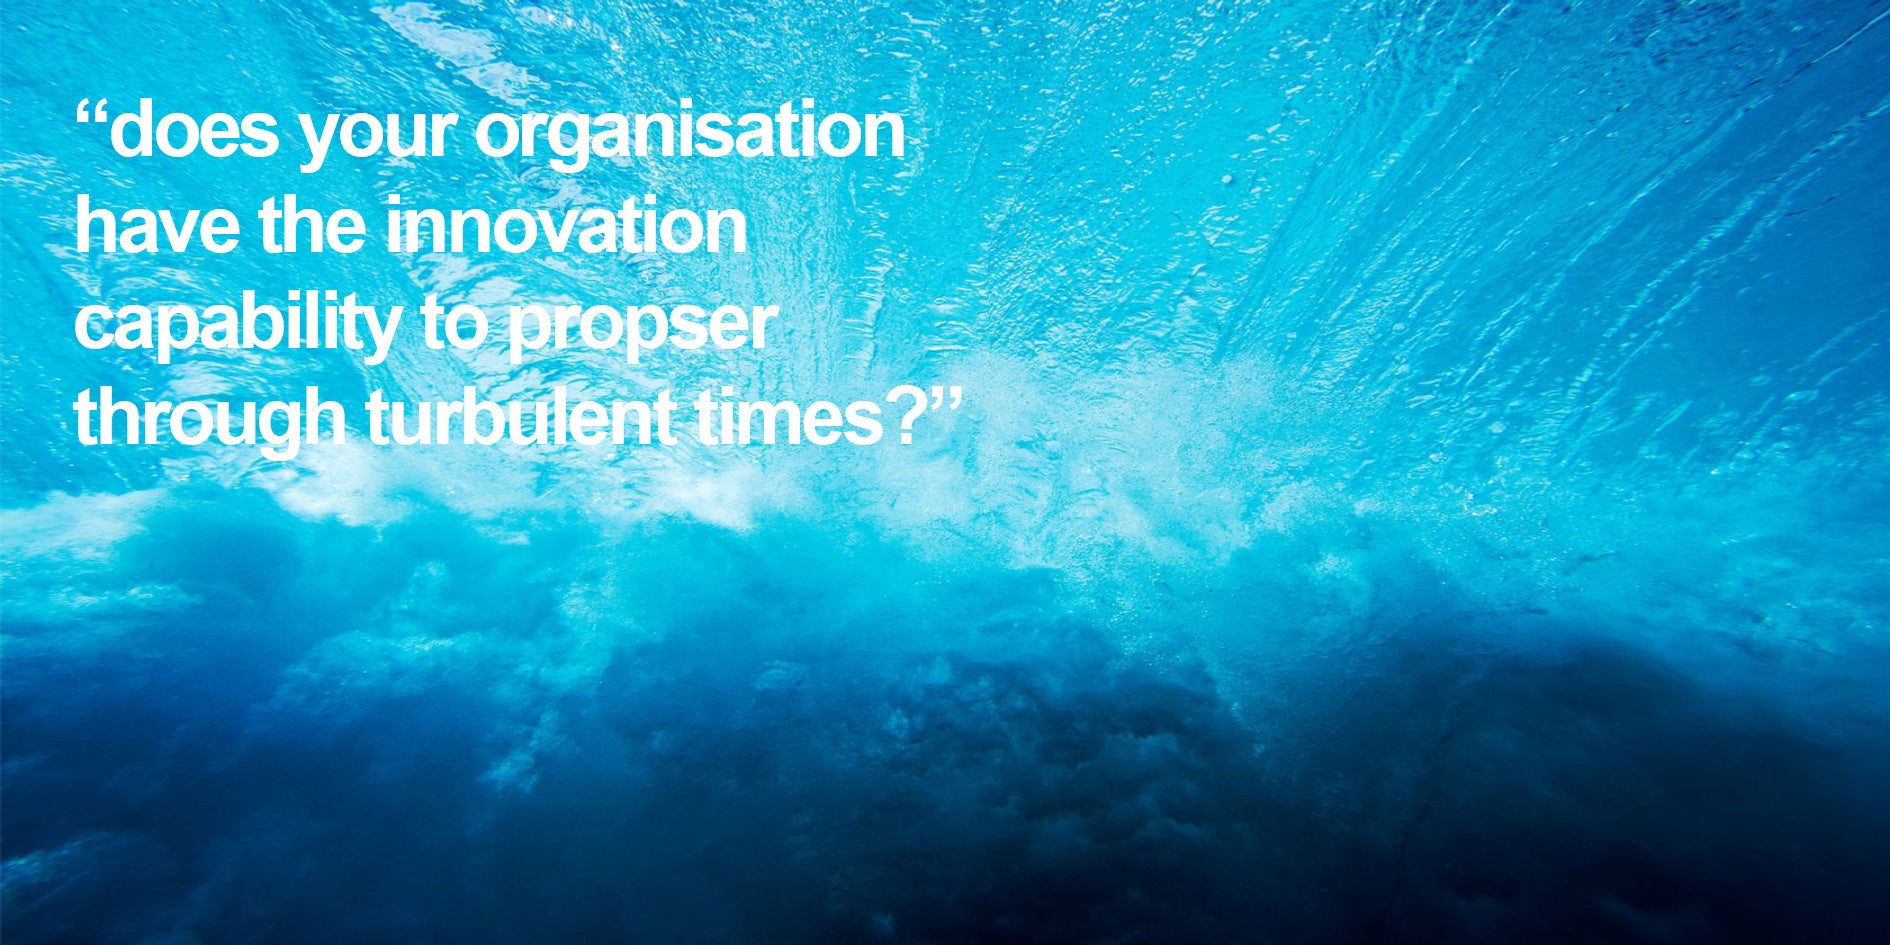 does your organisation have the innovation capability to prospser through turbulent times